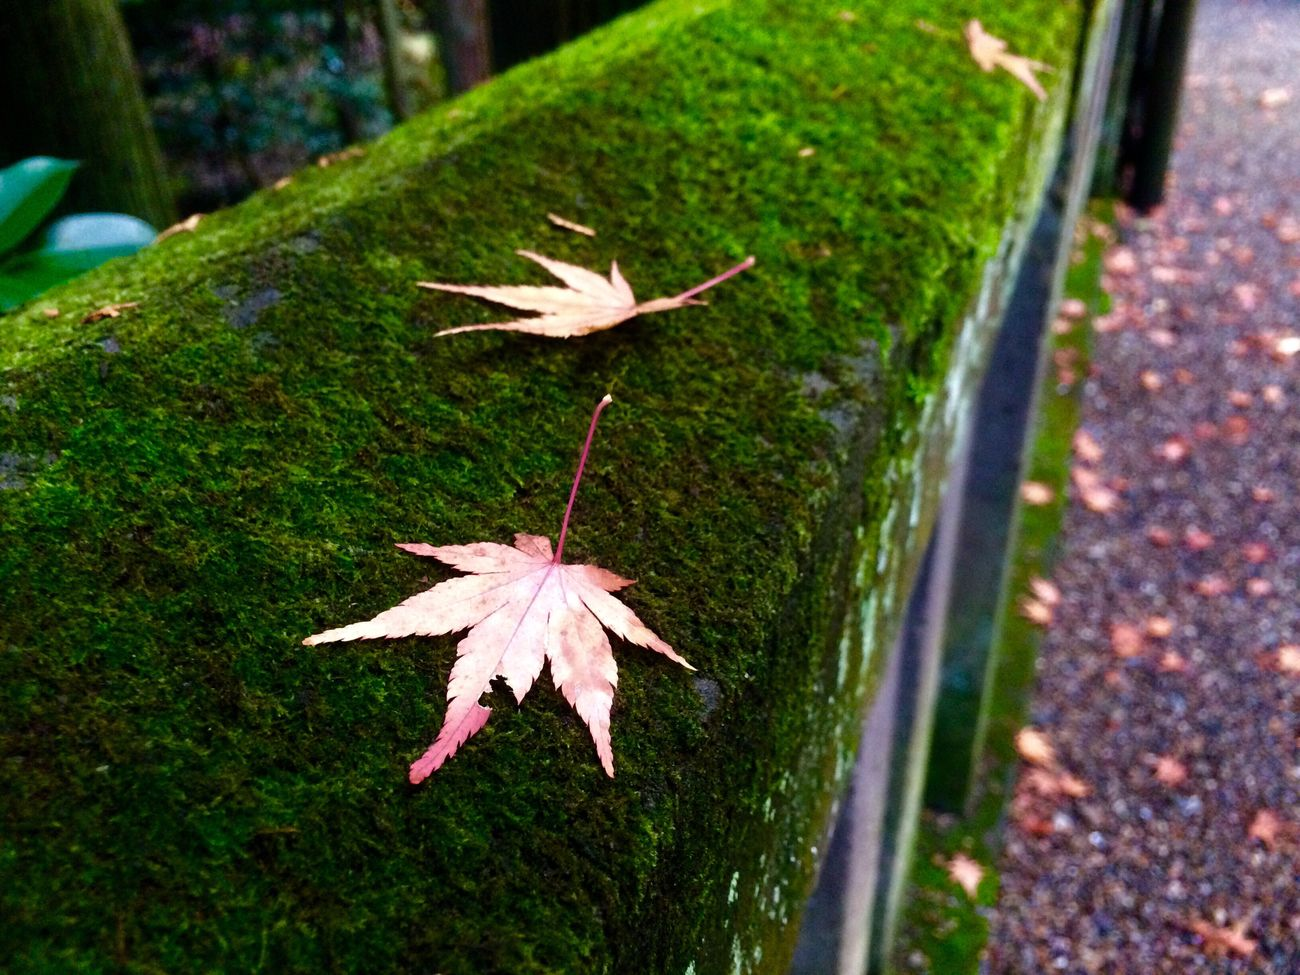 Nature Growth Plant High Angle View Day Leaf Green Color No People Outdoors Close-up Beauty In Nature Animal Themes Maple Leaf Hello World Japan Japanese  Iphonegallery Hope https://youtu.be/RS3ThhcelIE